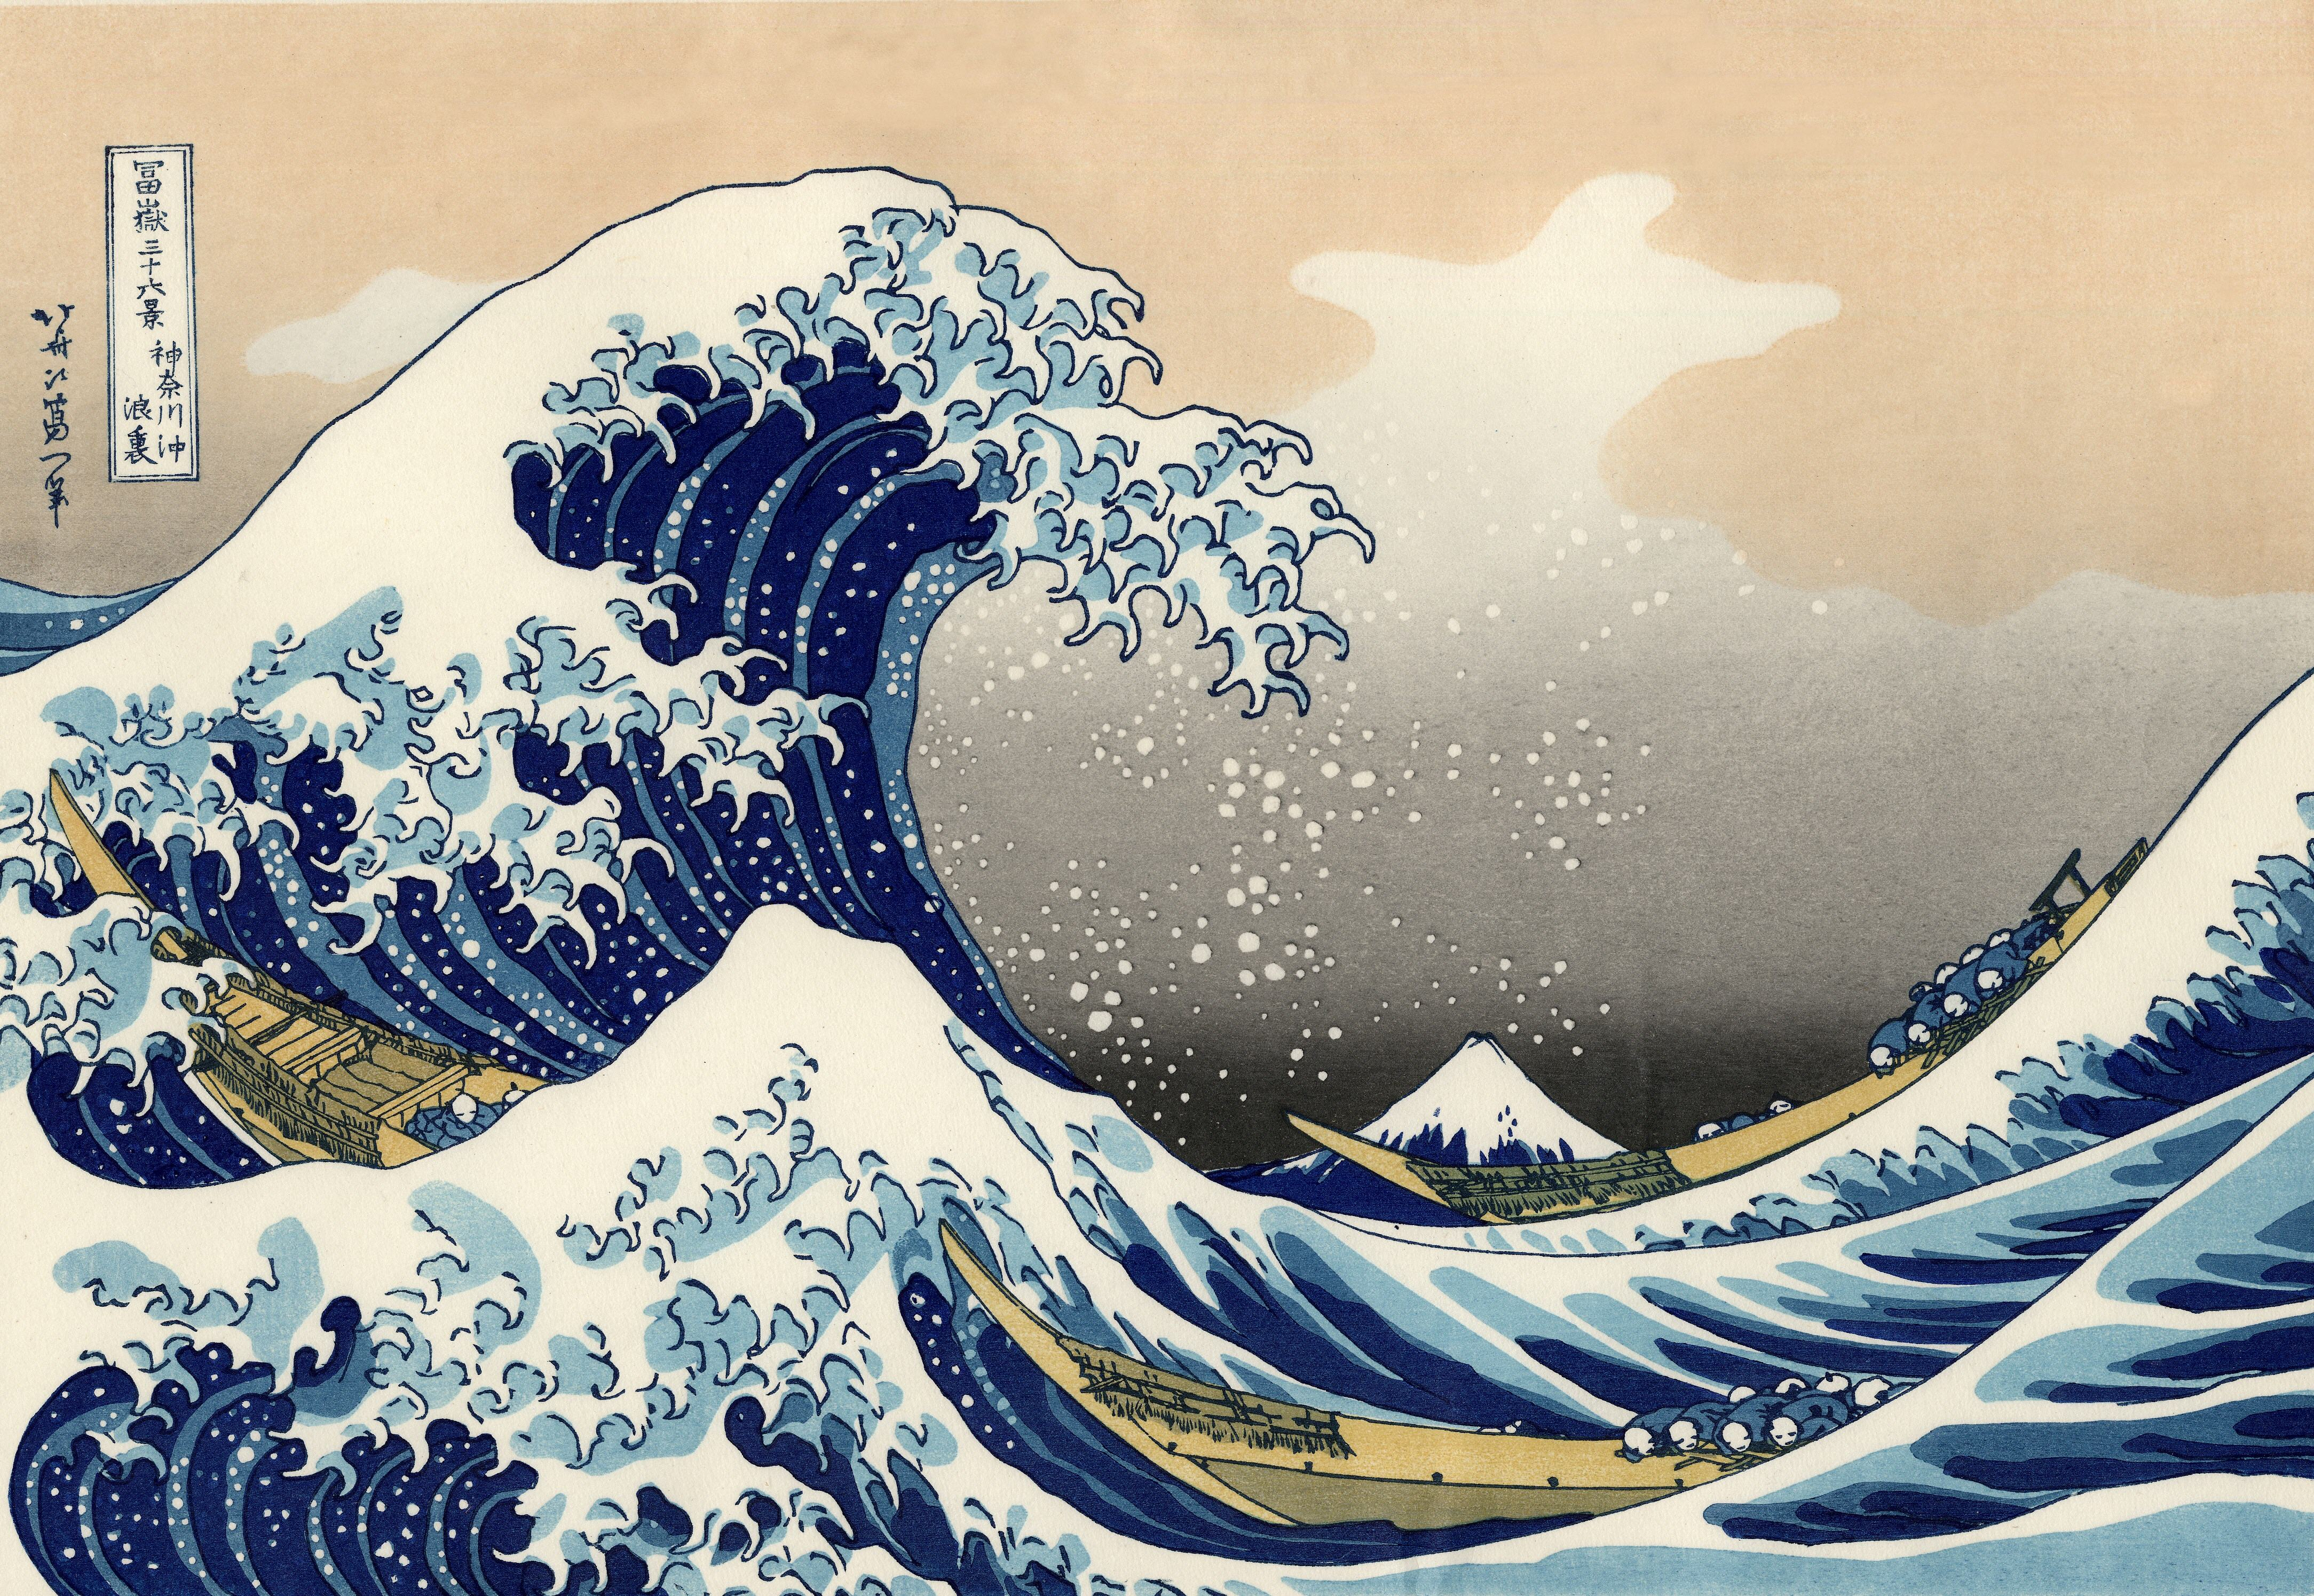 The Great Wave Off Kanagawa Computer Wallpapers Desktop Backgrounds 4335x2990